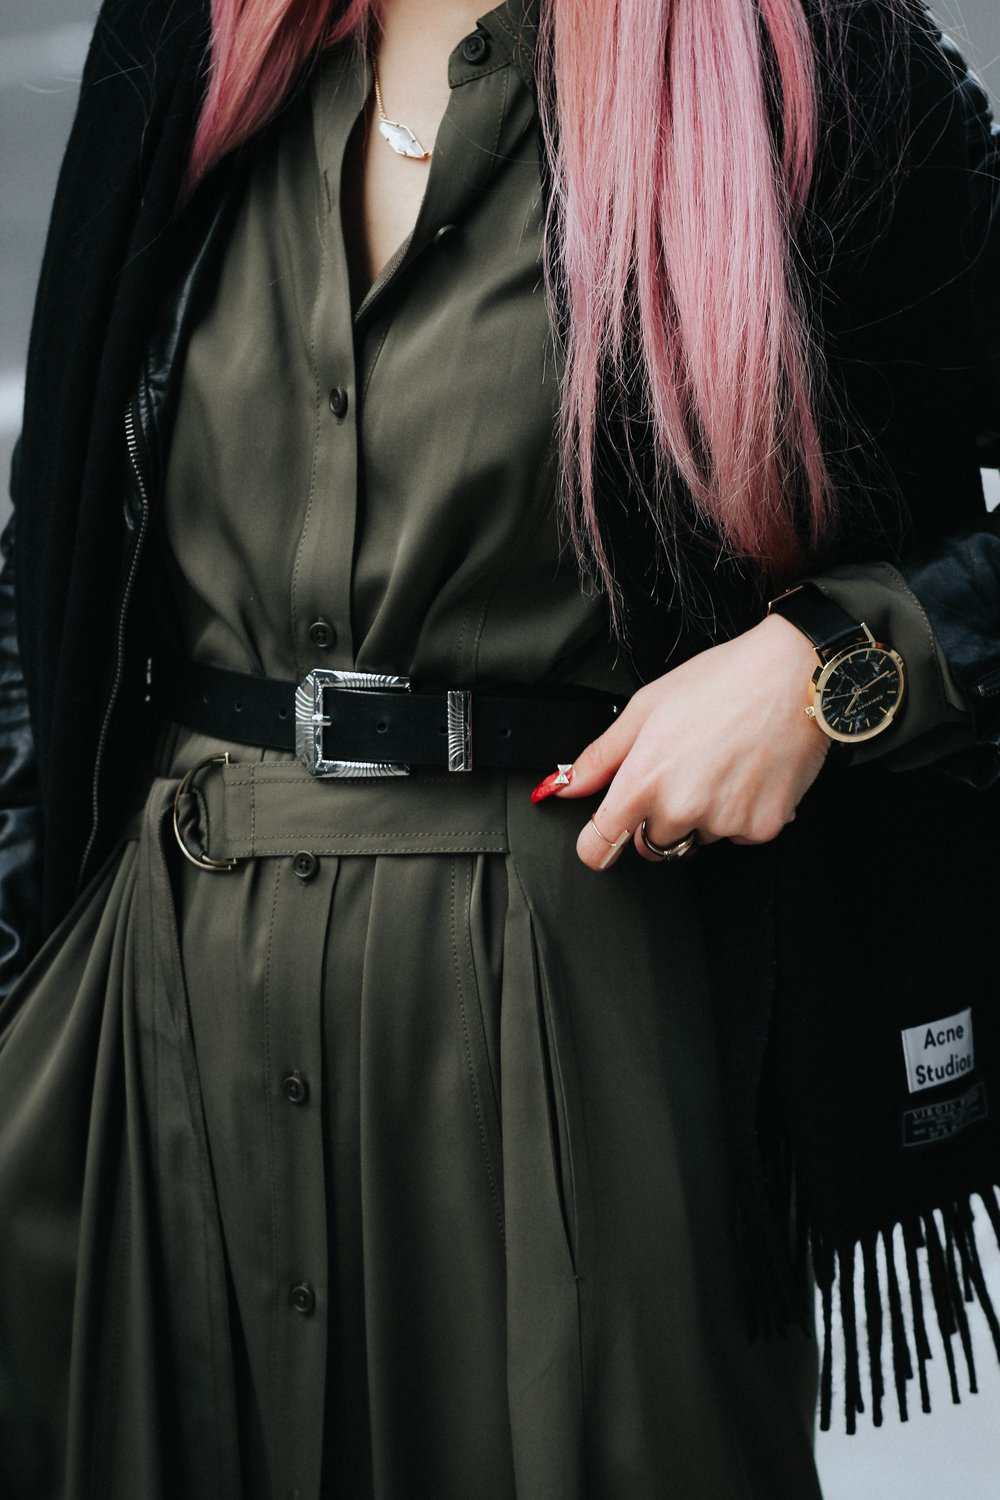 Acne Studios Black Canada Narrow Scarf-Lack Of Color Fedora-H&M biker Jacket-DVF silk shirt dress-ASOS western belt-zara statement bag-ASOS western mule-Aikas love closet-pink hair-seattle fashion lifestyle blogger-japanese 11